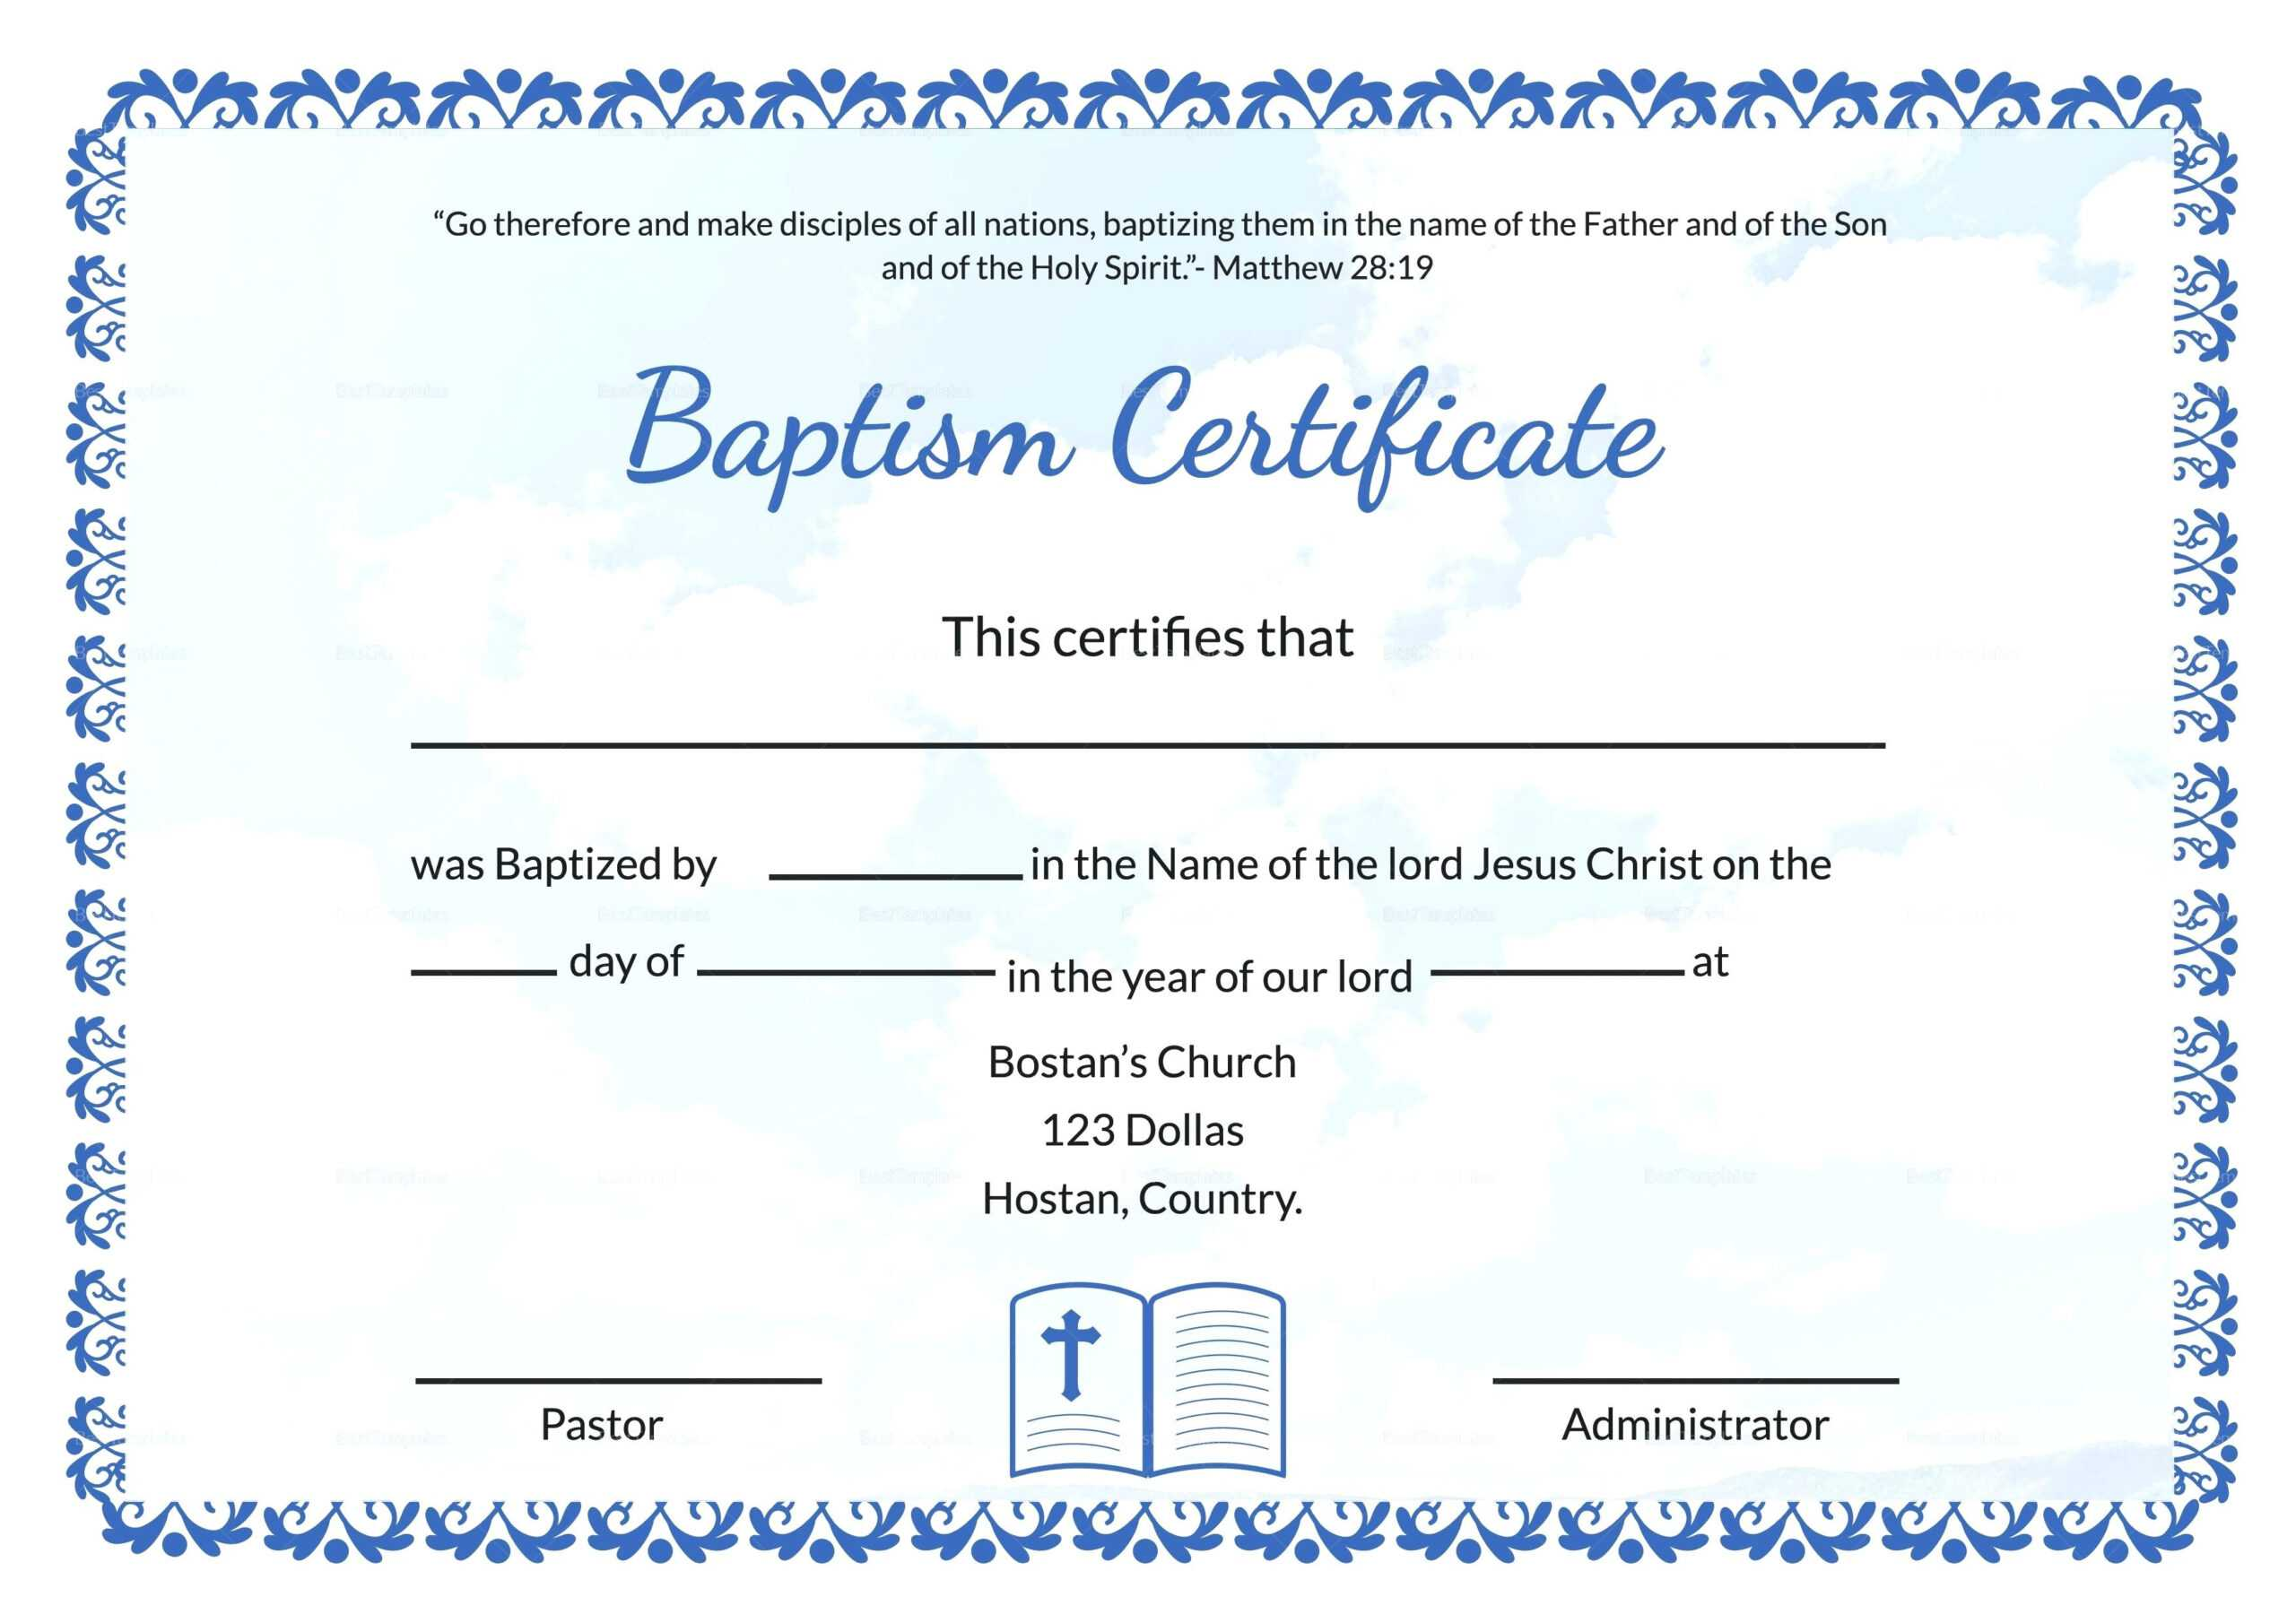 Baptism Certificate Template Word – Heartwork With Regard To Baptism Certificate Template Word